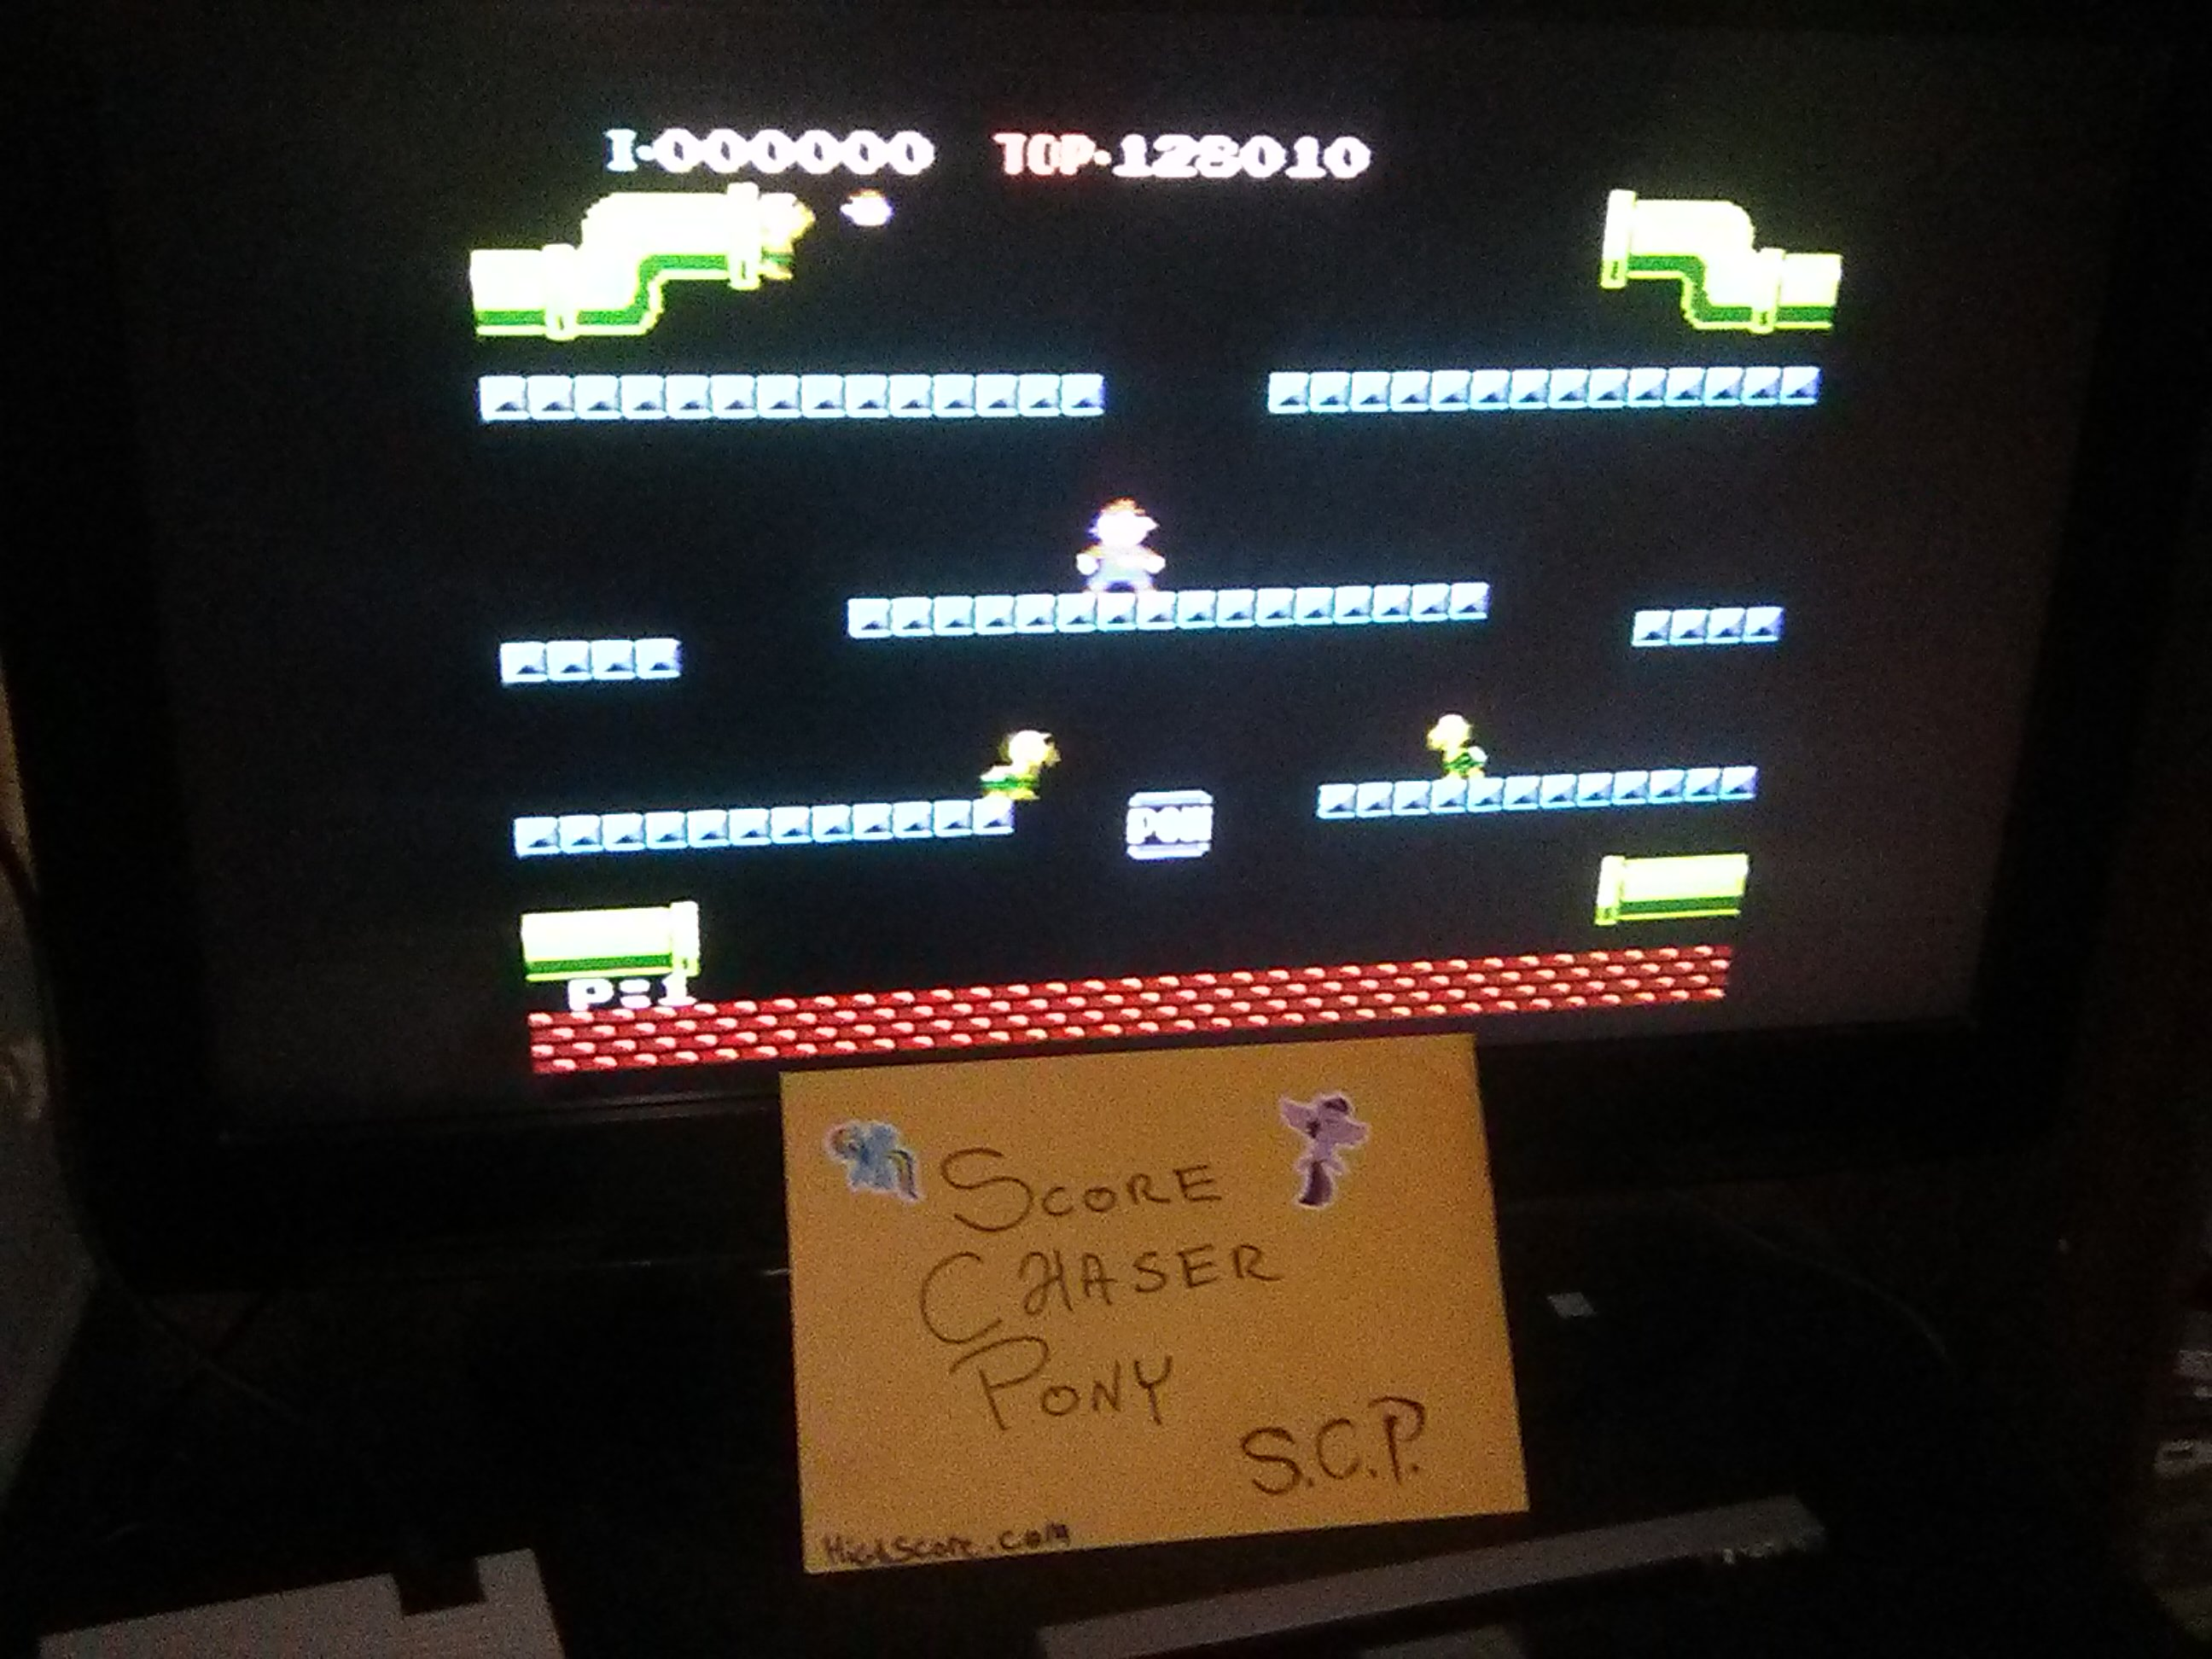 Scorechaserpony: Mario Bros. (NES/Famicom Emulated) 128,010 points on 2019-03-03 13:48:33